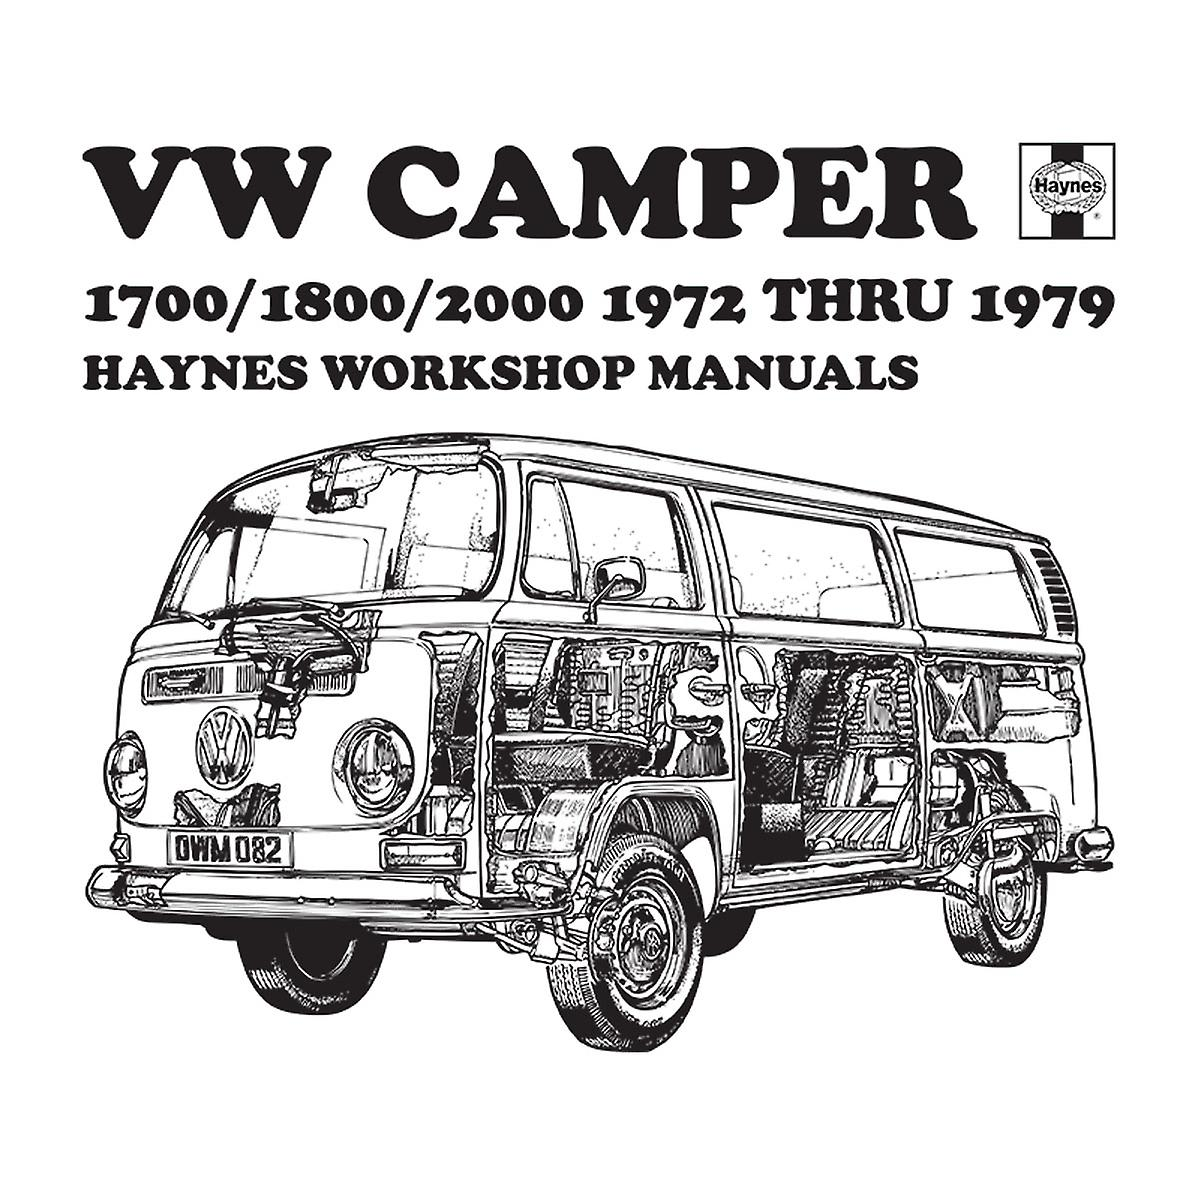 Haynes Workshop Manual VW Camper 72 To 79 Black Women's T